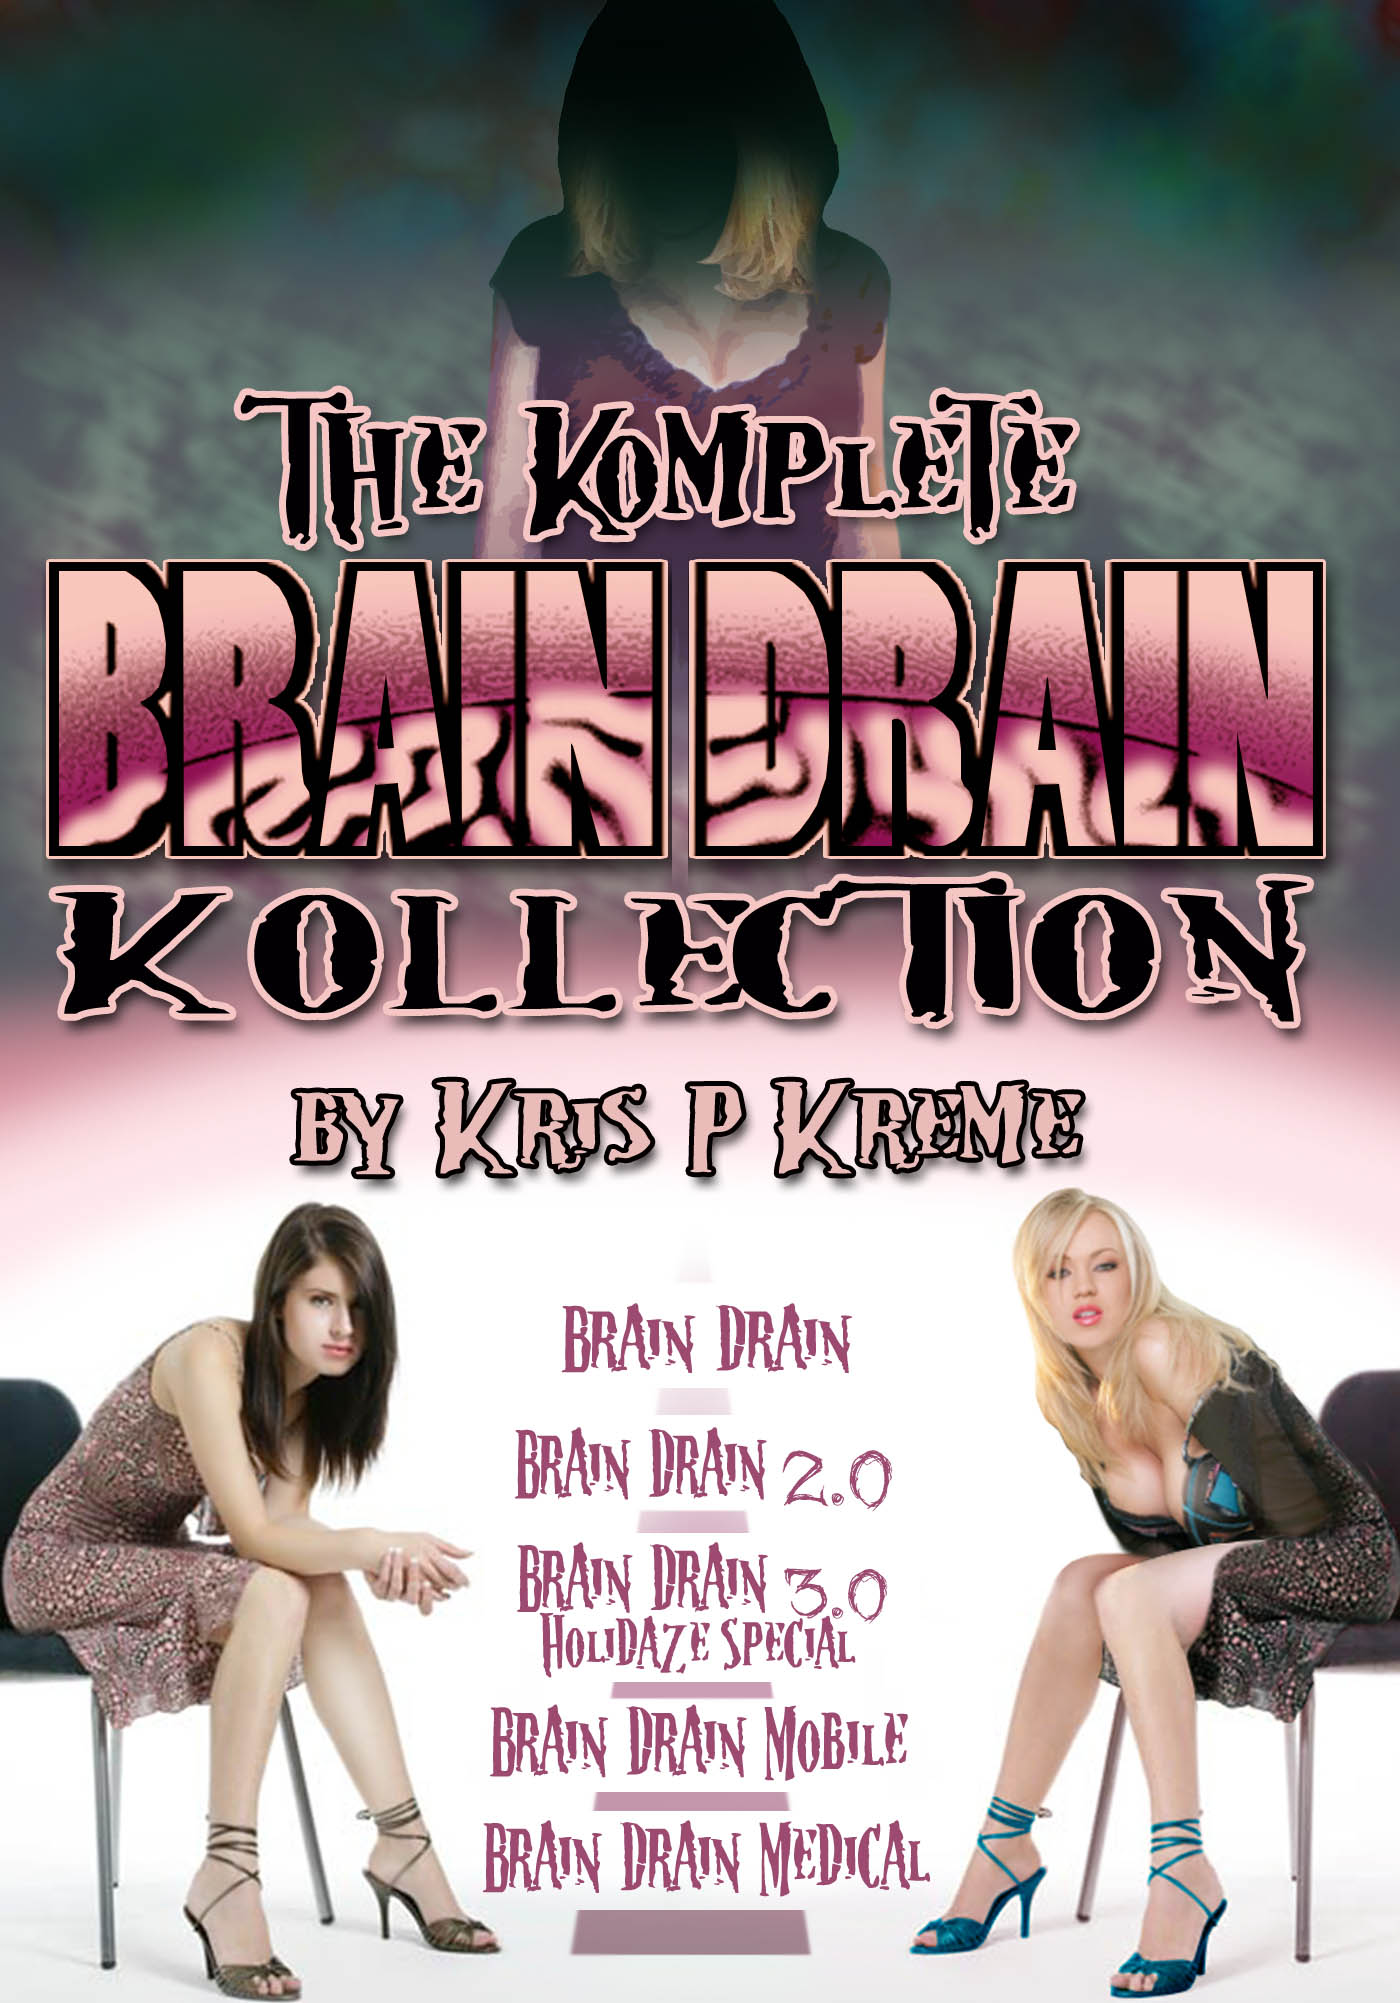 The Komplete Brain Drain Kollection by Kris P. Kreme